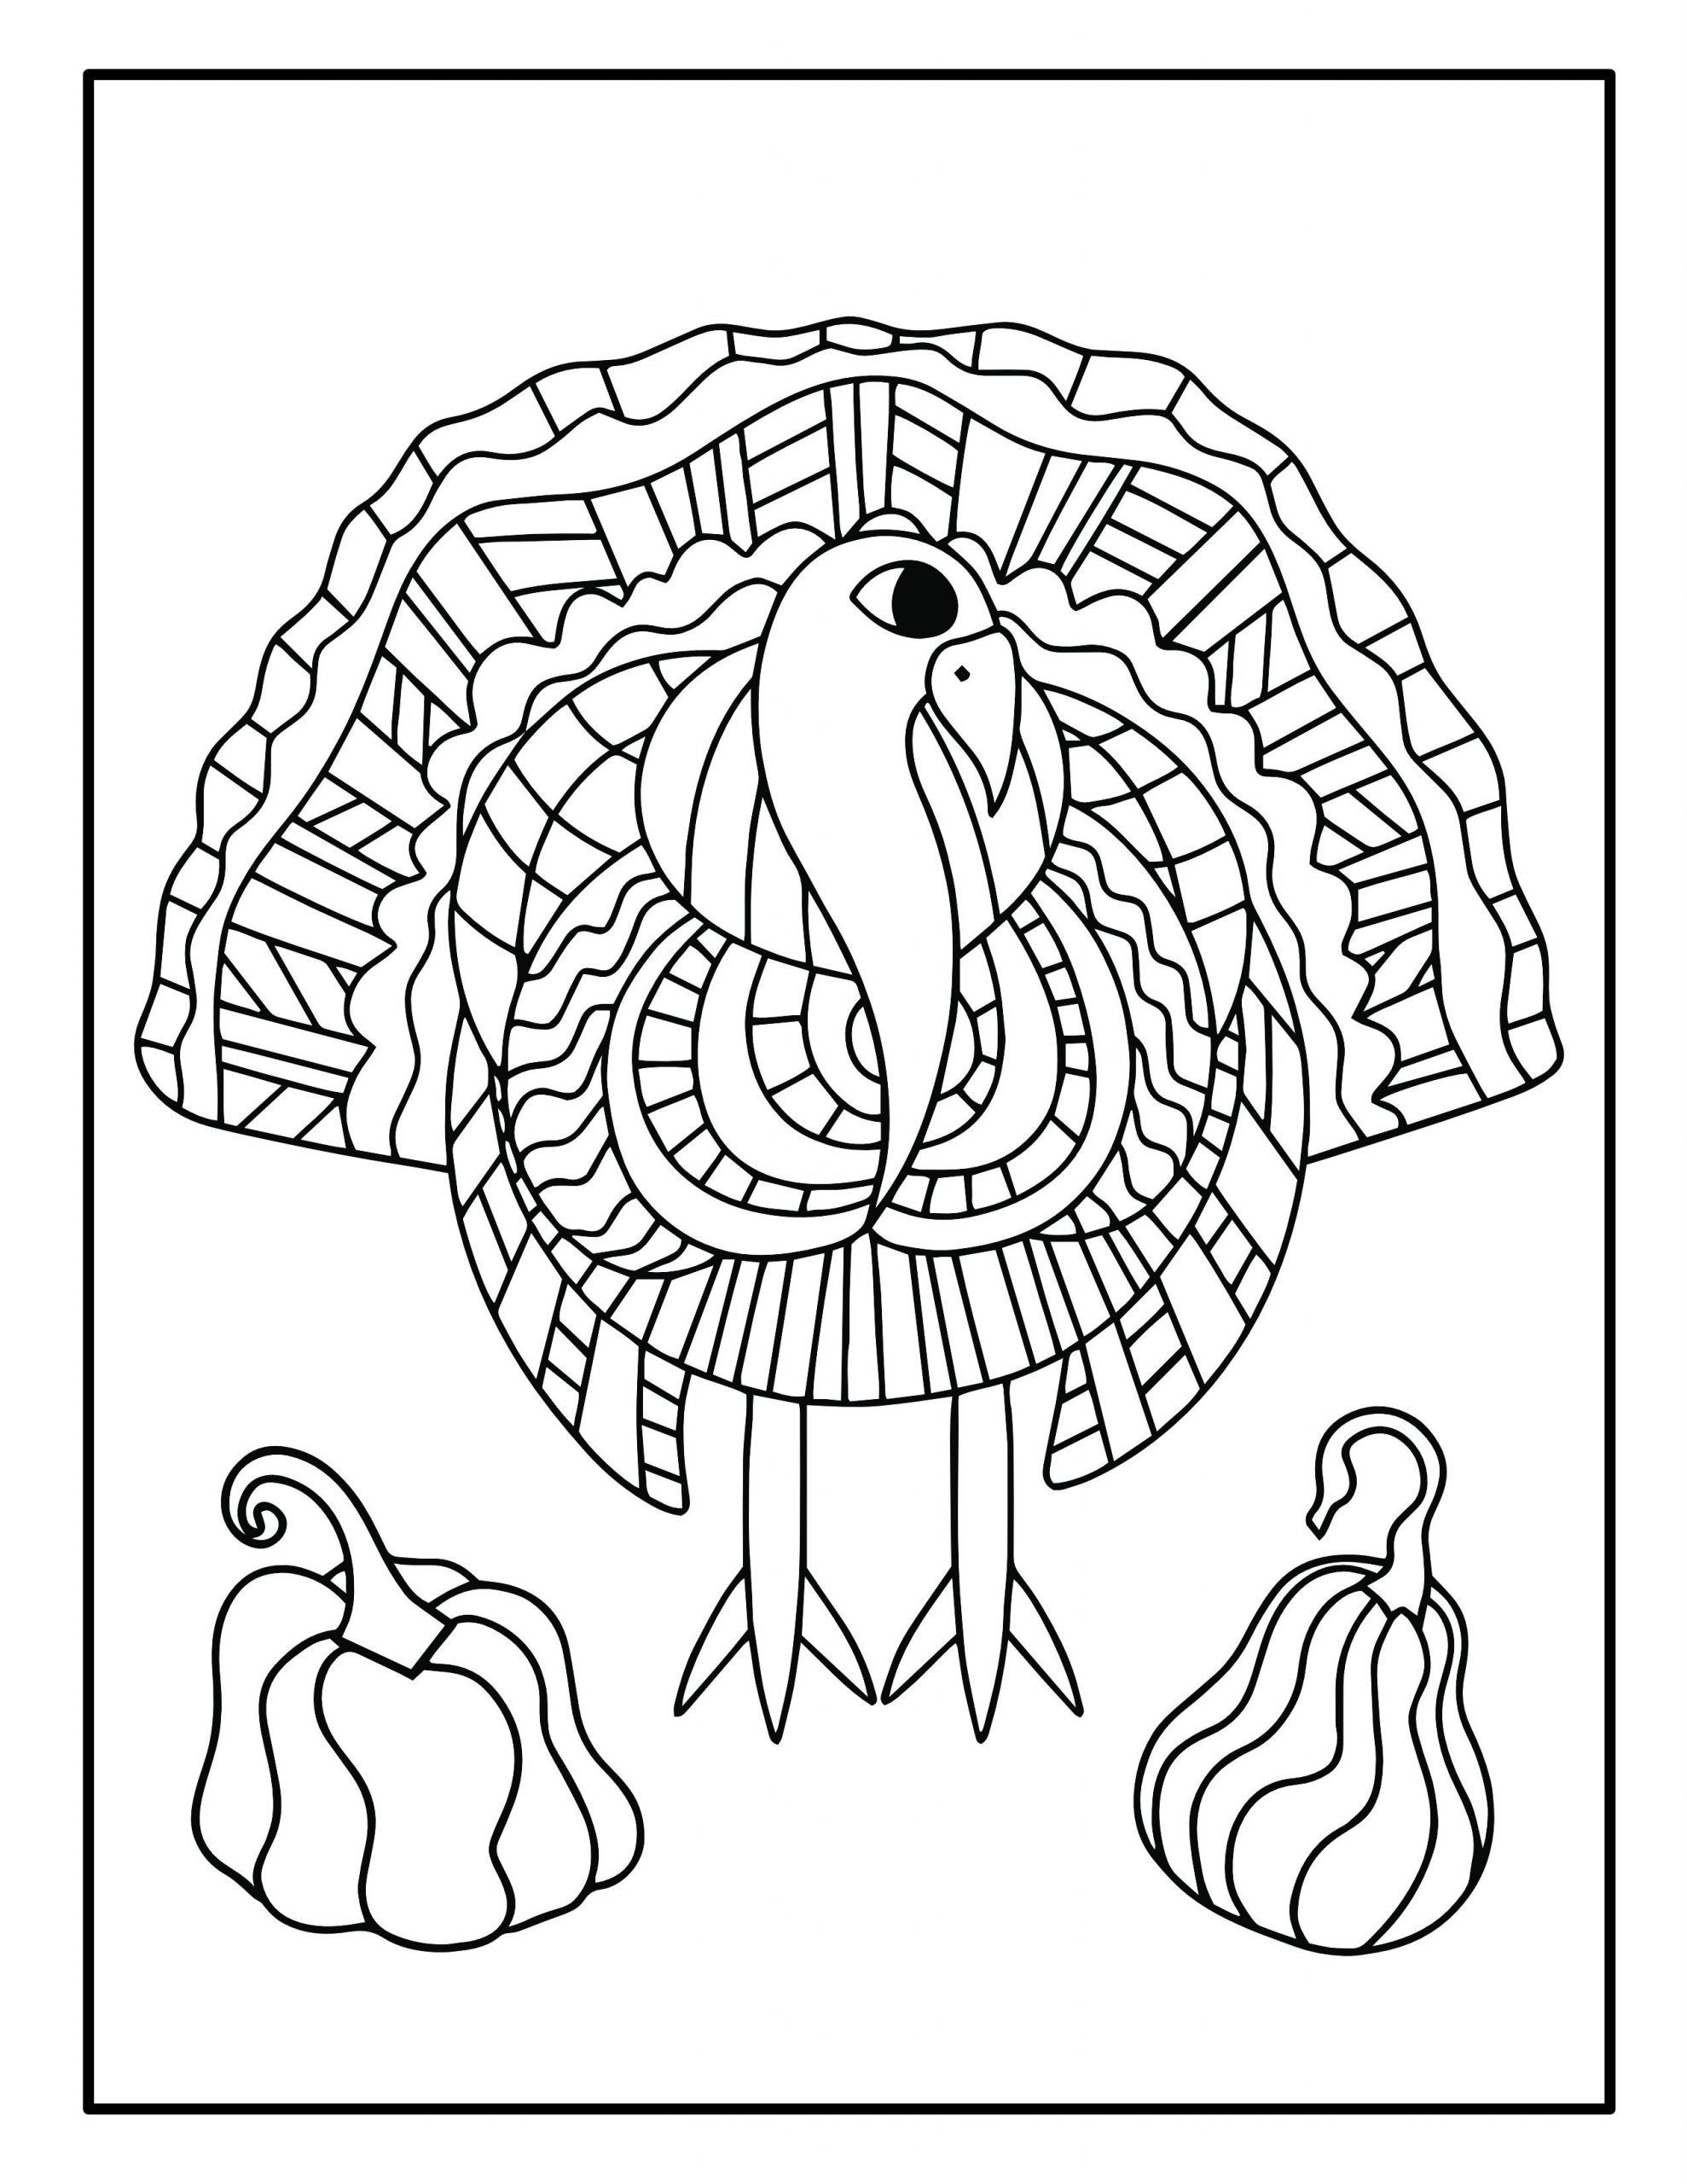 Free Printable Thanksgiving Coloring Pages Christmas Coloring Sheets Valentines Day Coloring Page Thanksgiving Coloring Pages [ 2560 x 1978 Pixel ]